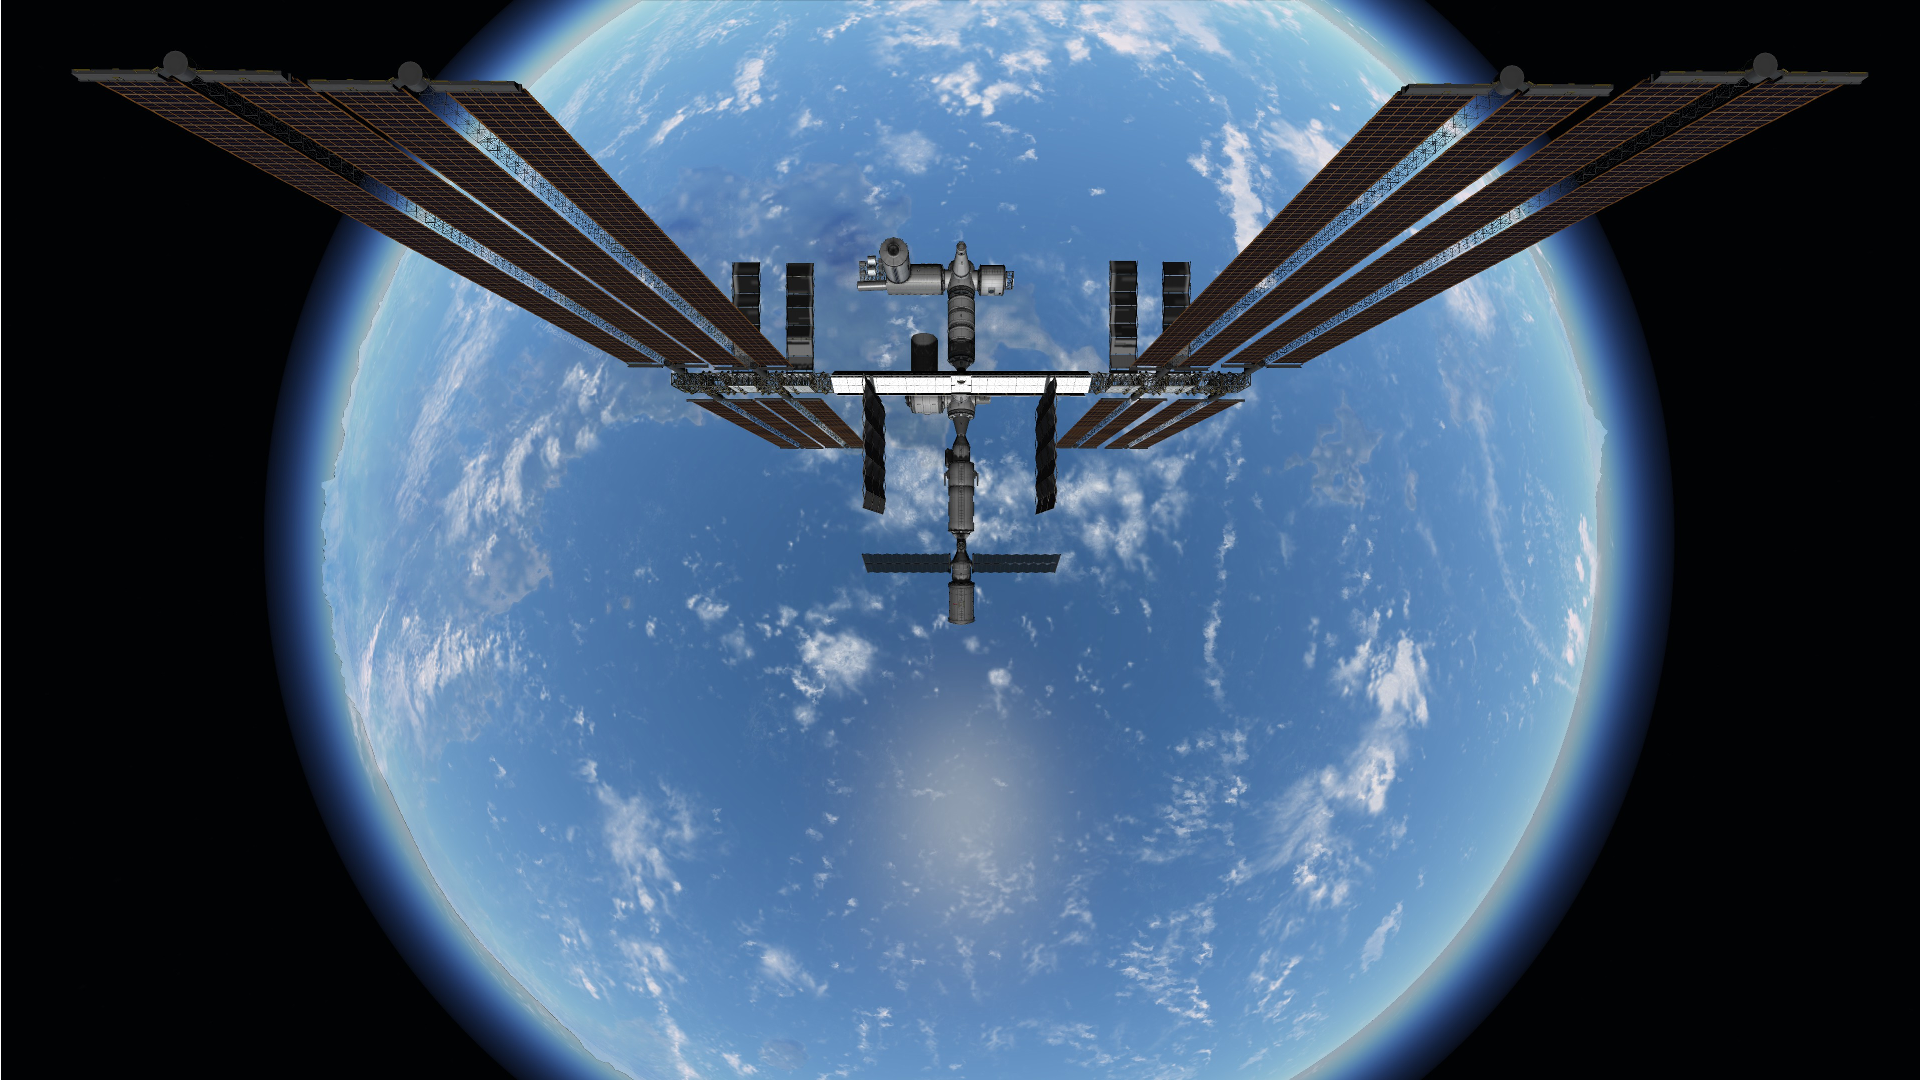 Iss Wallpapers Hd: 1920x1080 And 3840x2160 (4K) ISS Wallpapers